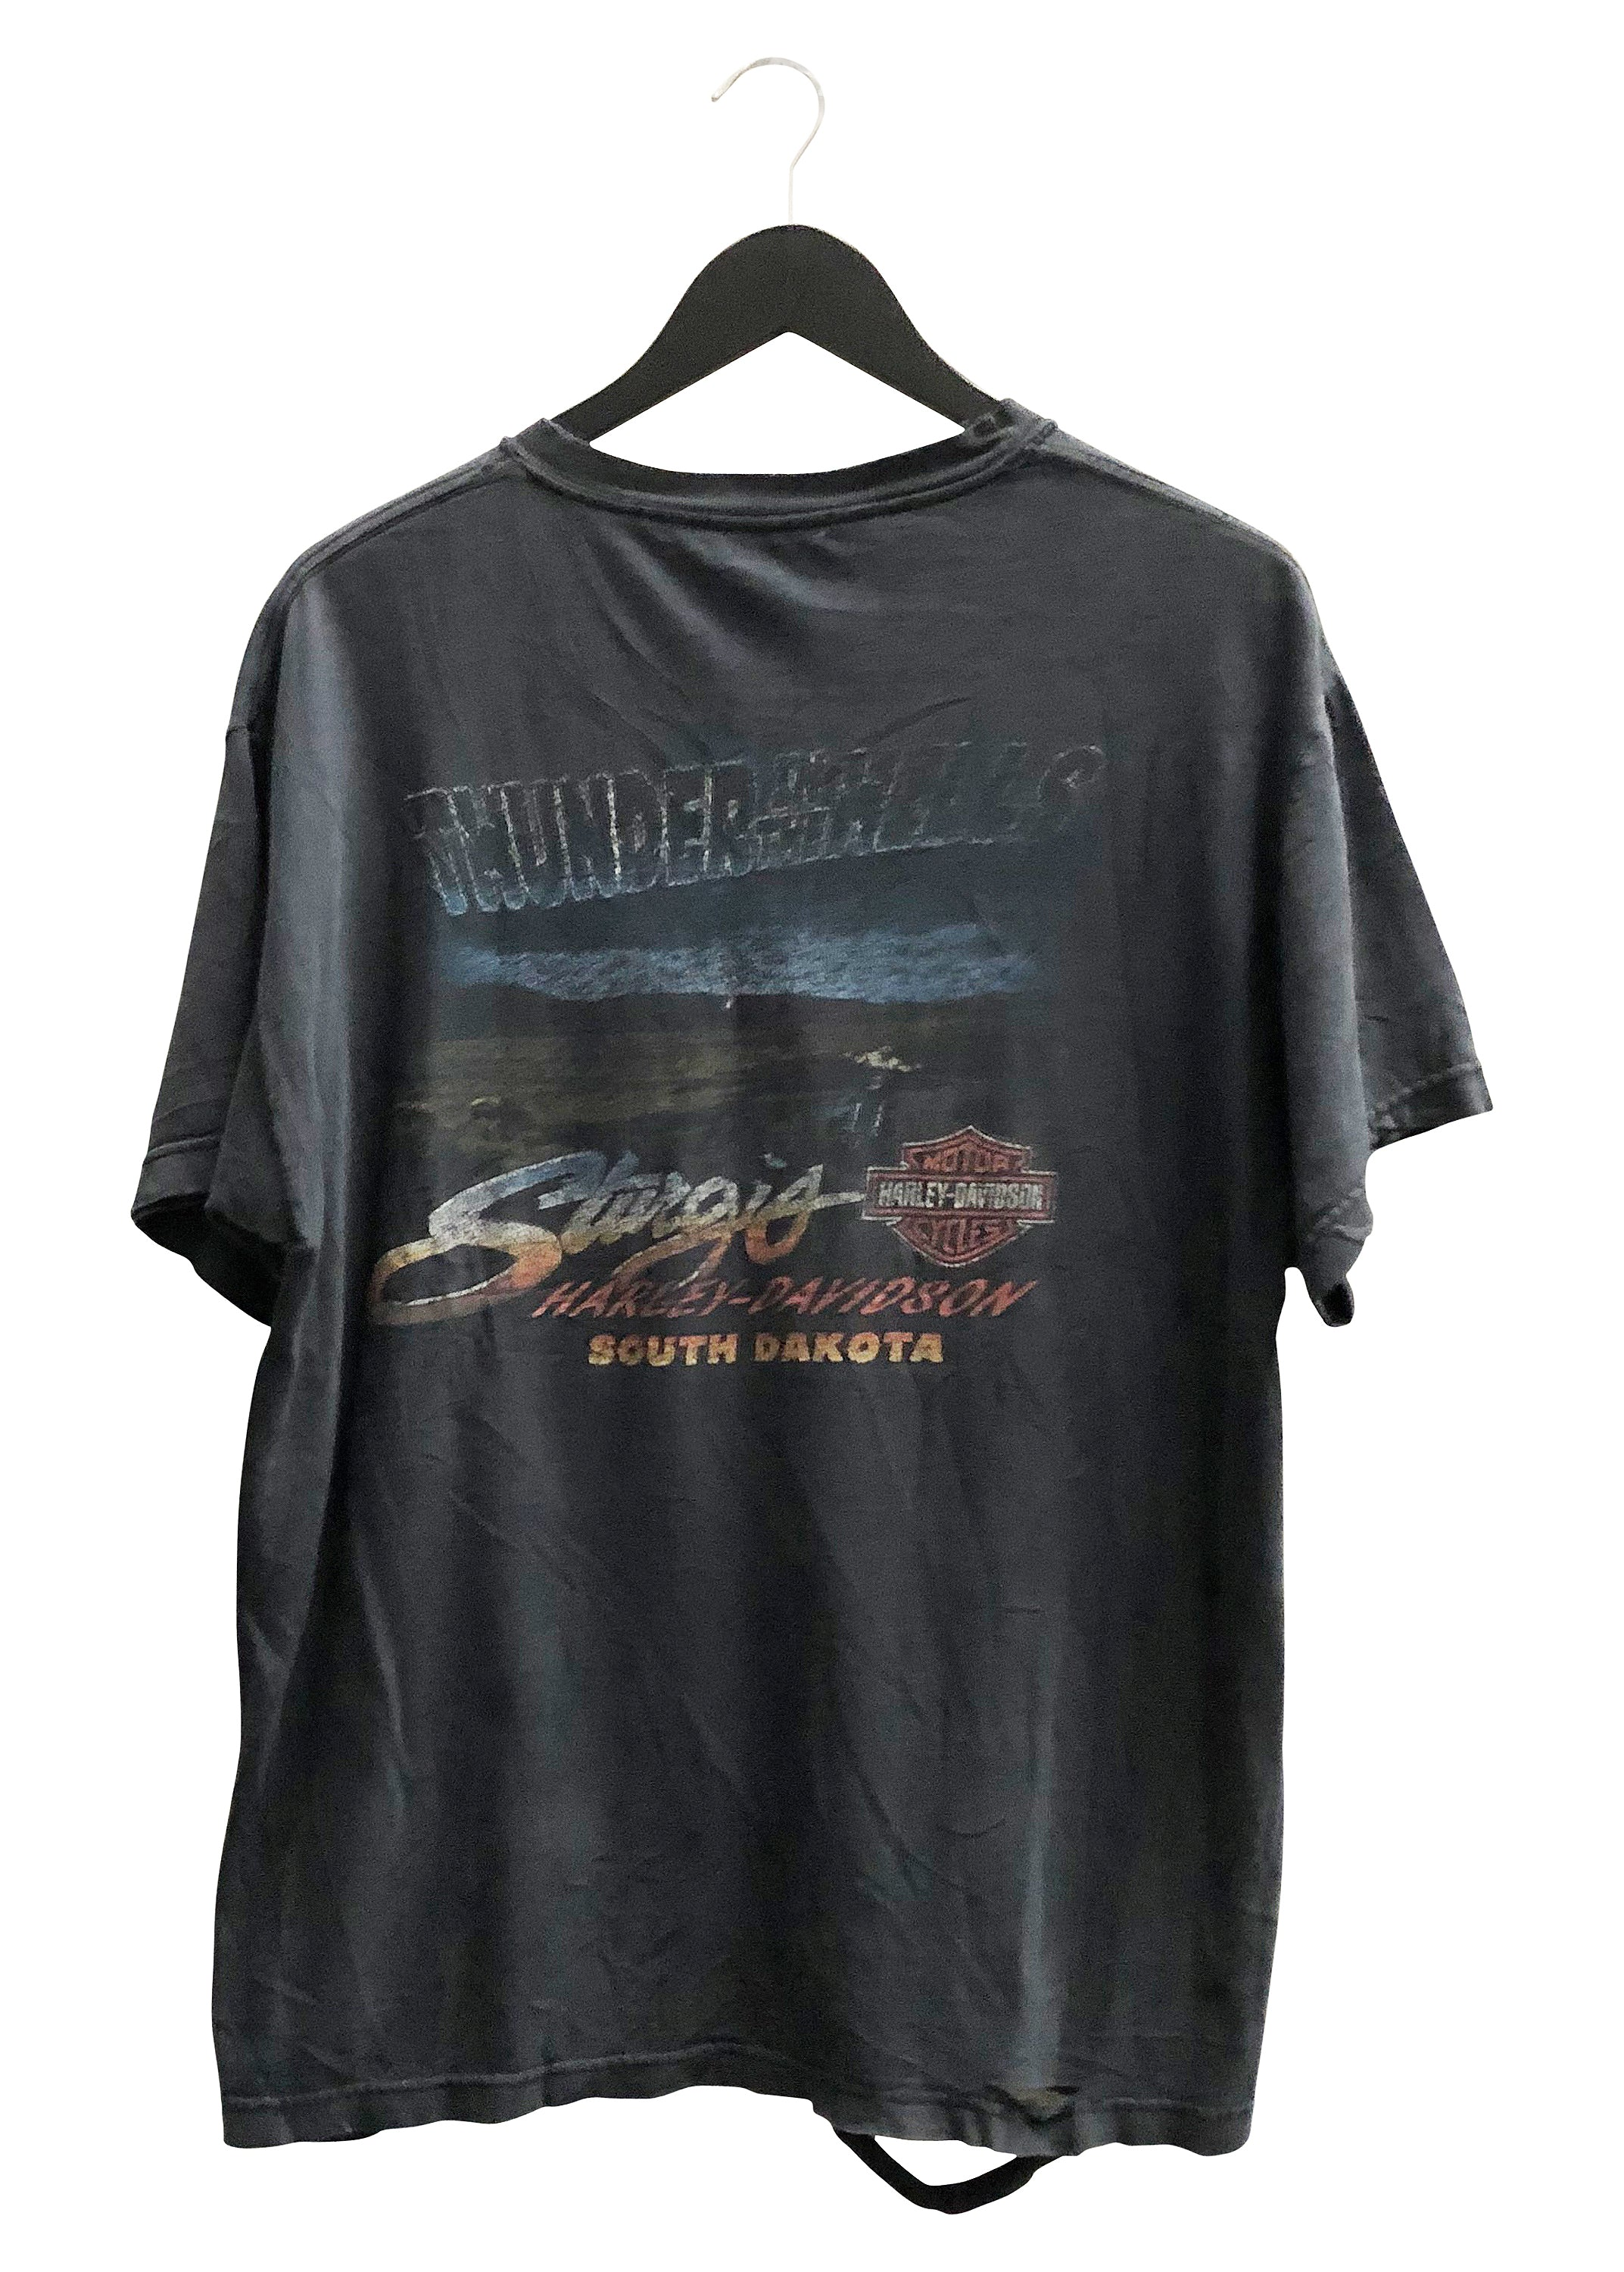 HARLEY DAVIDSON 'SOUTH DAKOTA' VINTAGE TEE